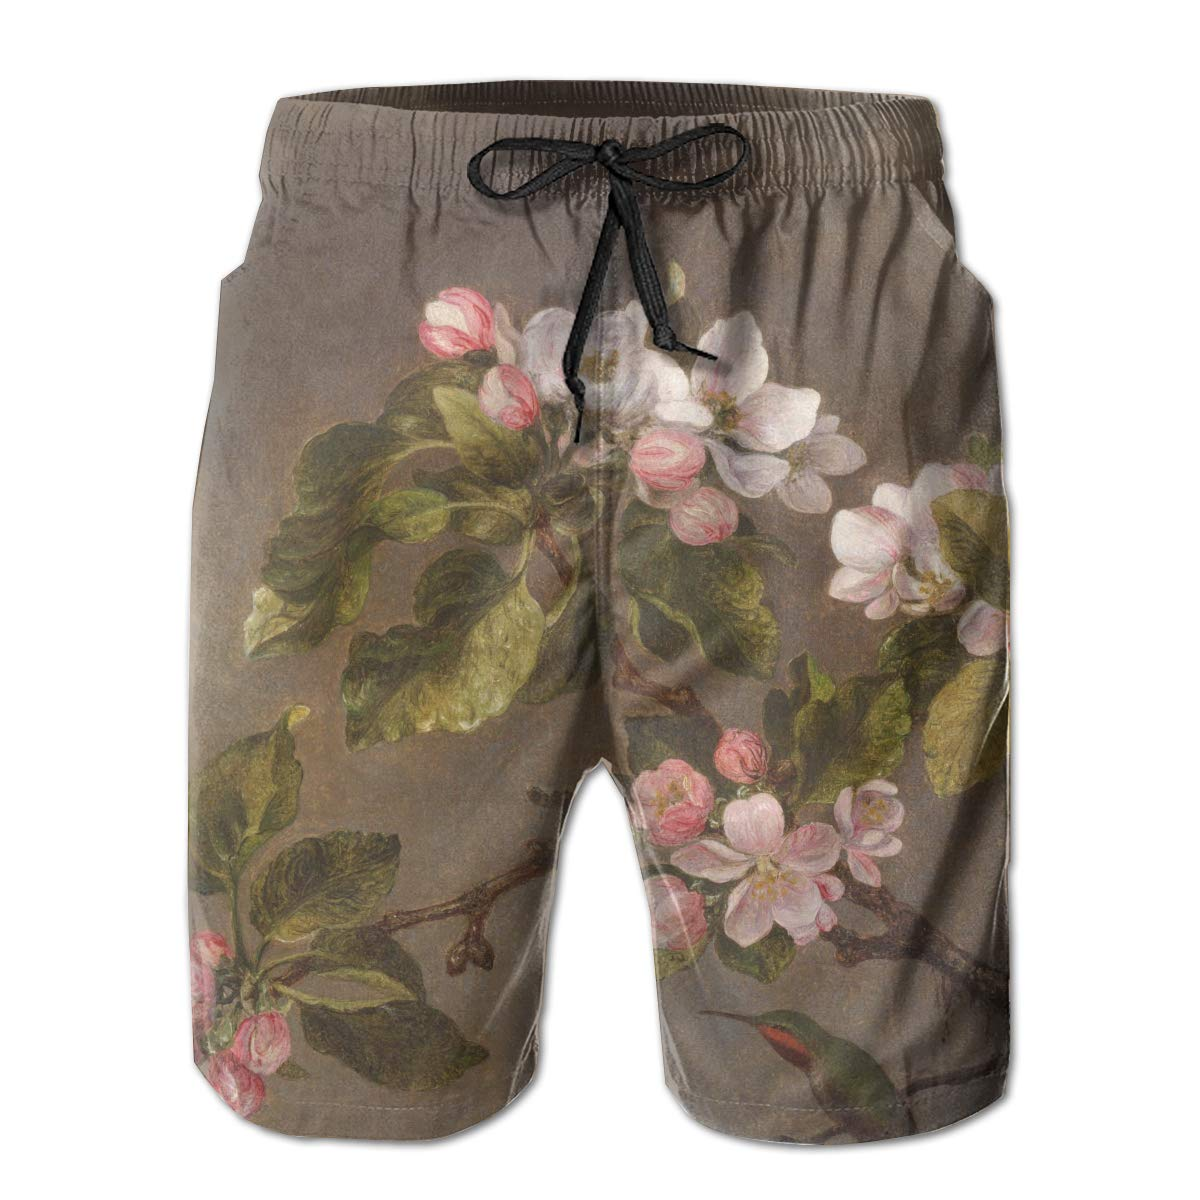 Rolandrace Hummingbird And Apple Blossoms Mens Colorful Swim Trunks Beach Board Shorts With Lining